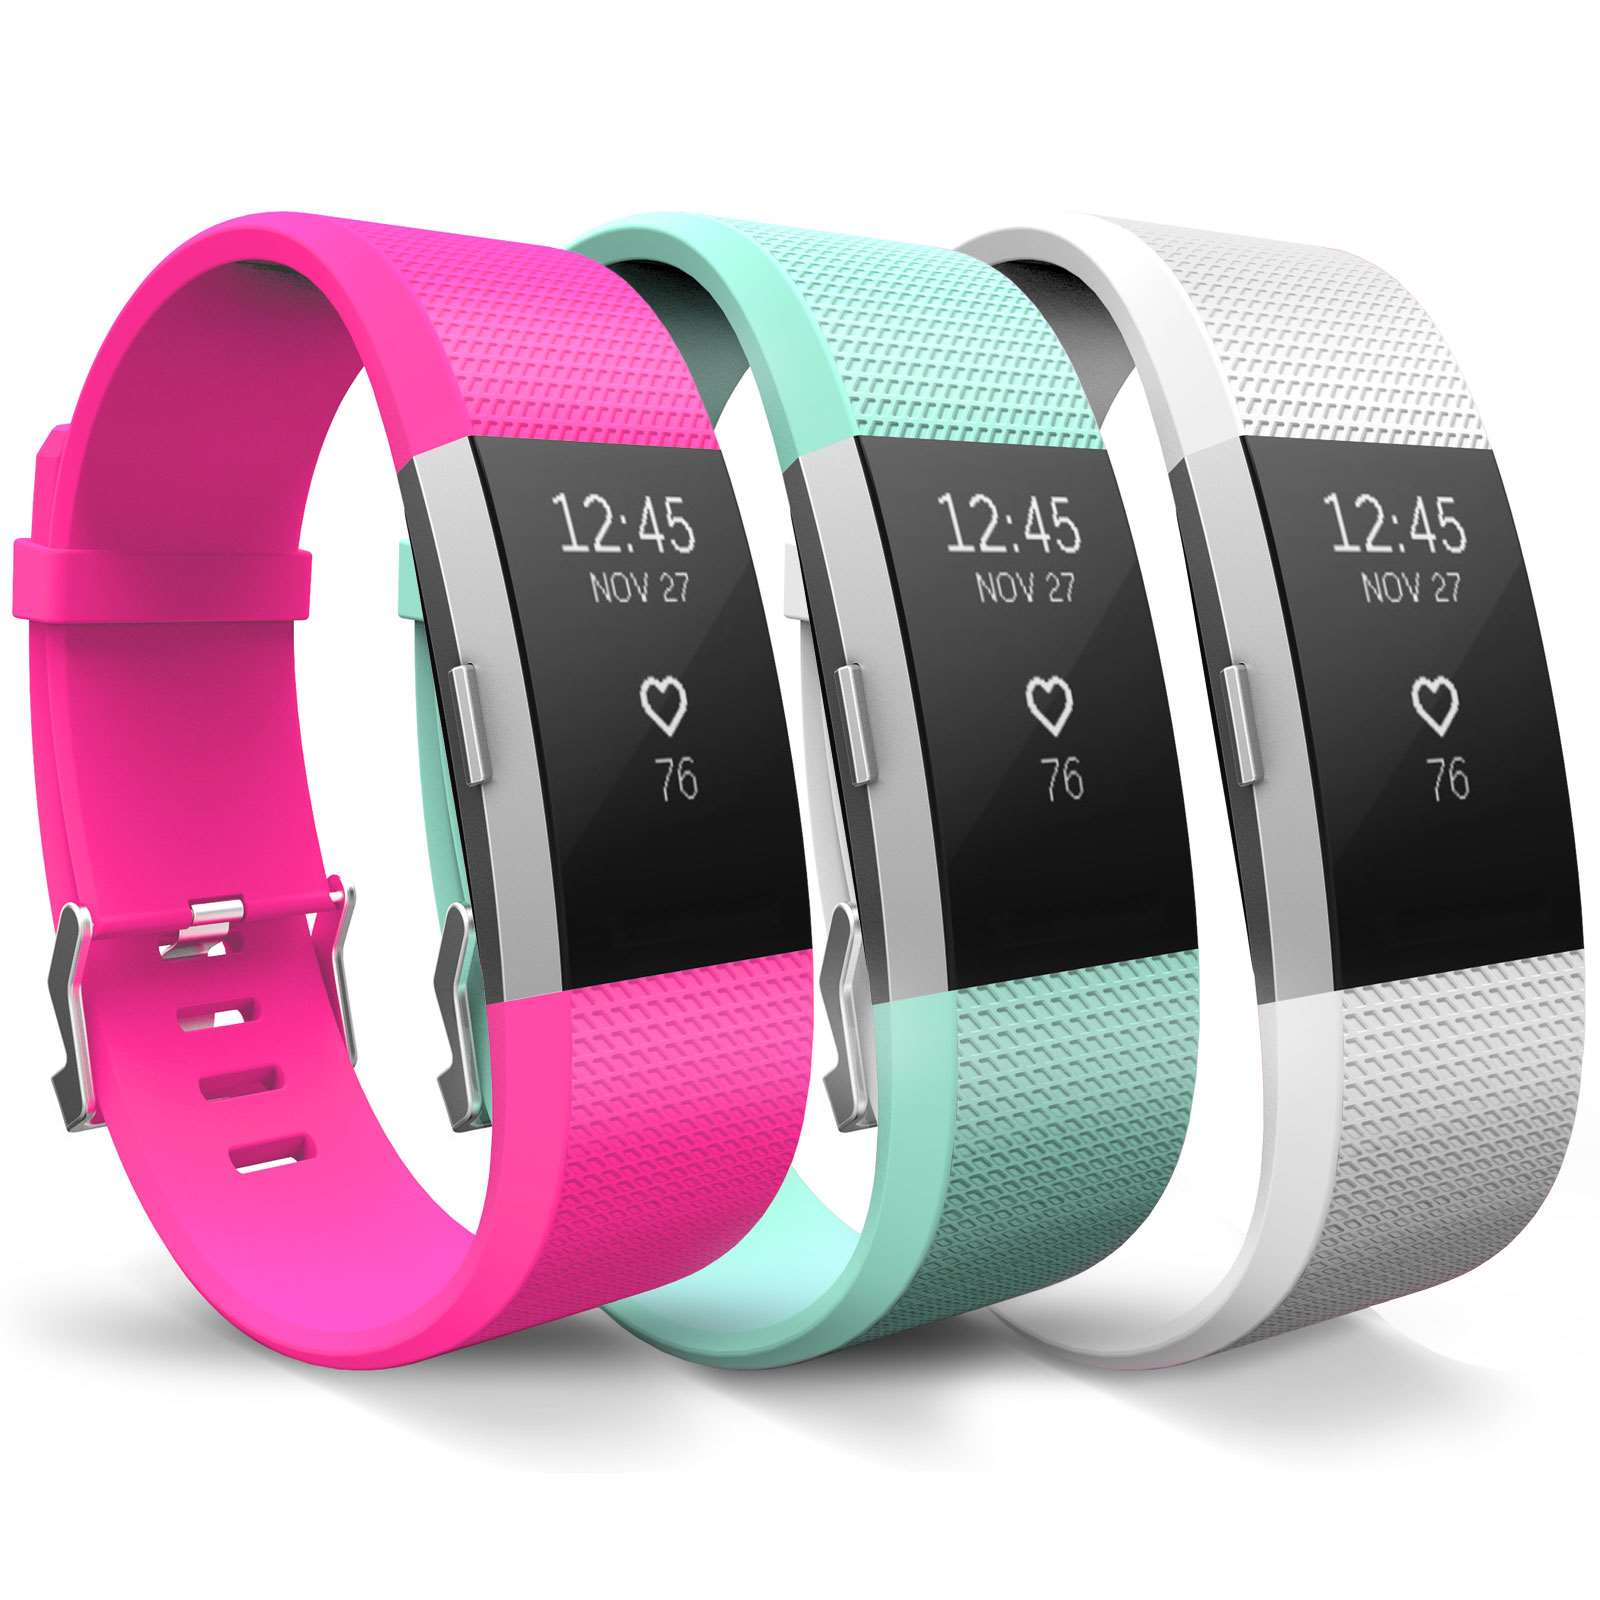 YouSave Fitbit Charge 2 Strap 3-Pack (Large) - Hot Pink/Mint